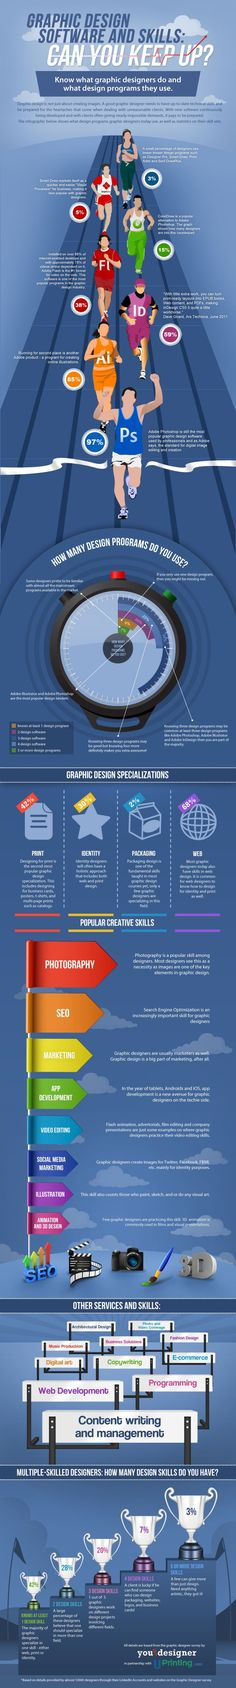 Know what graphic designers do and what design programs they use | #graphic #design #programs More